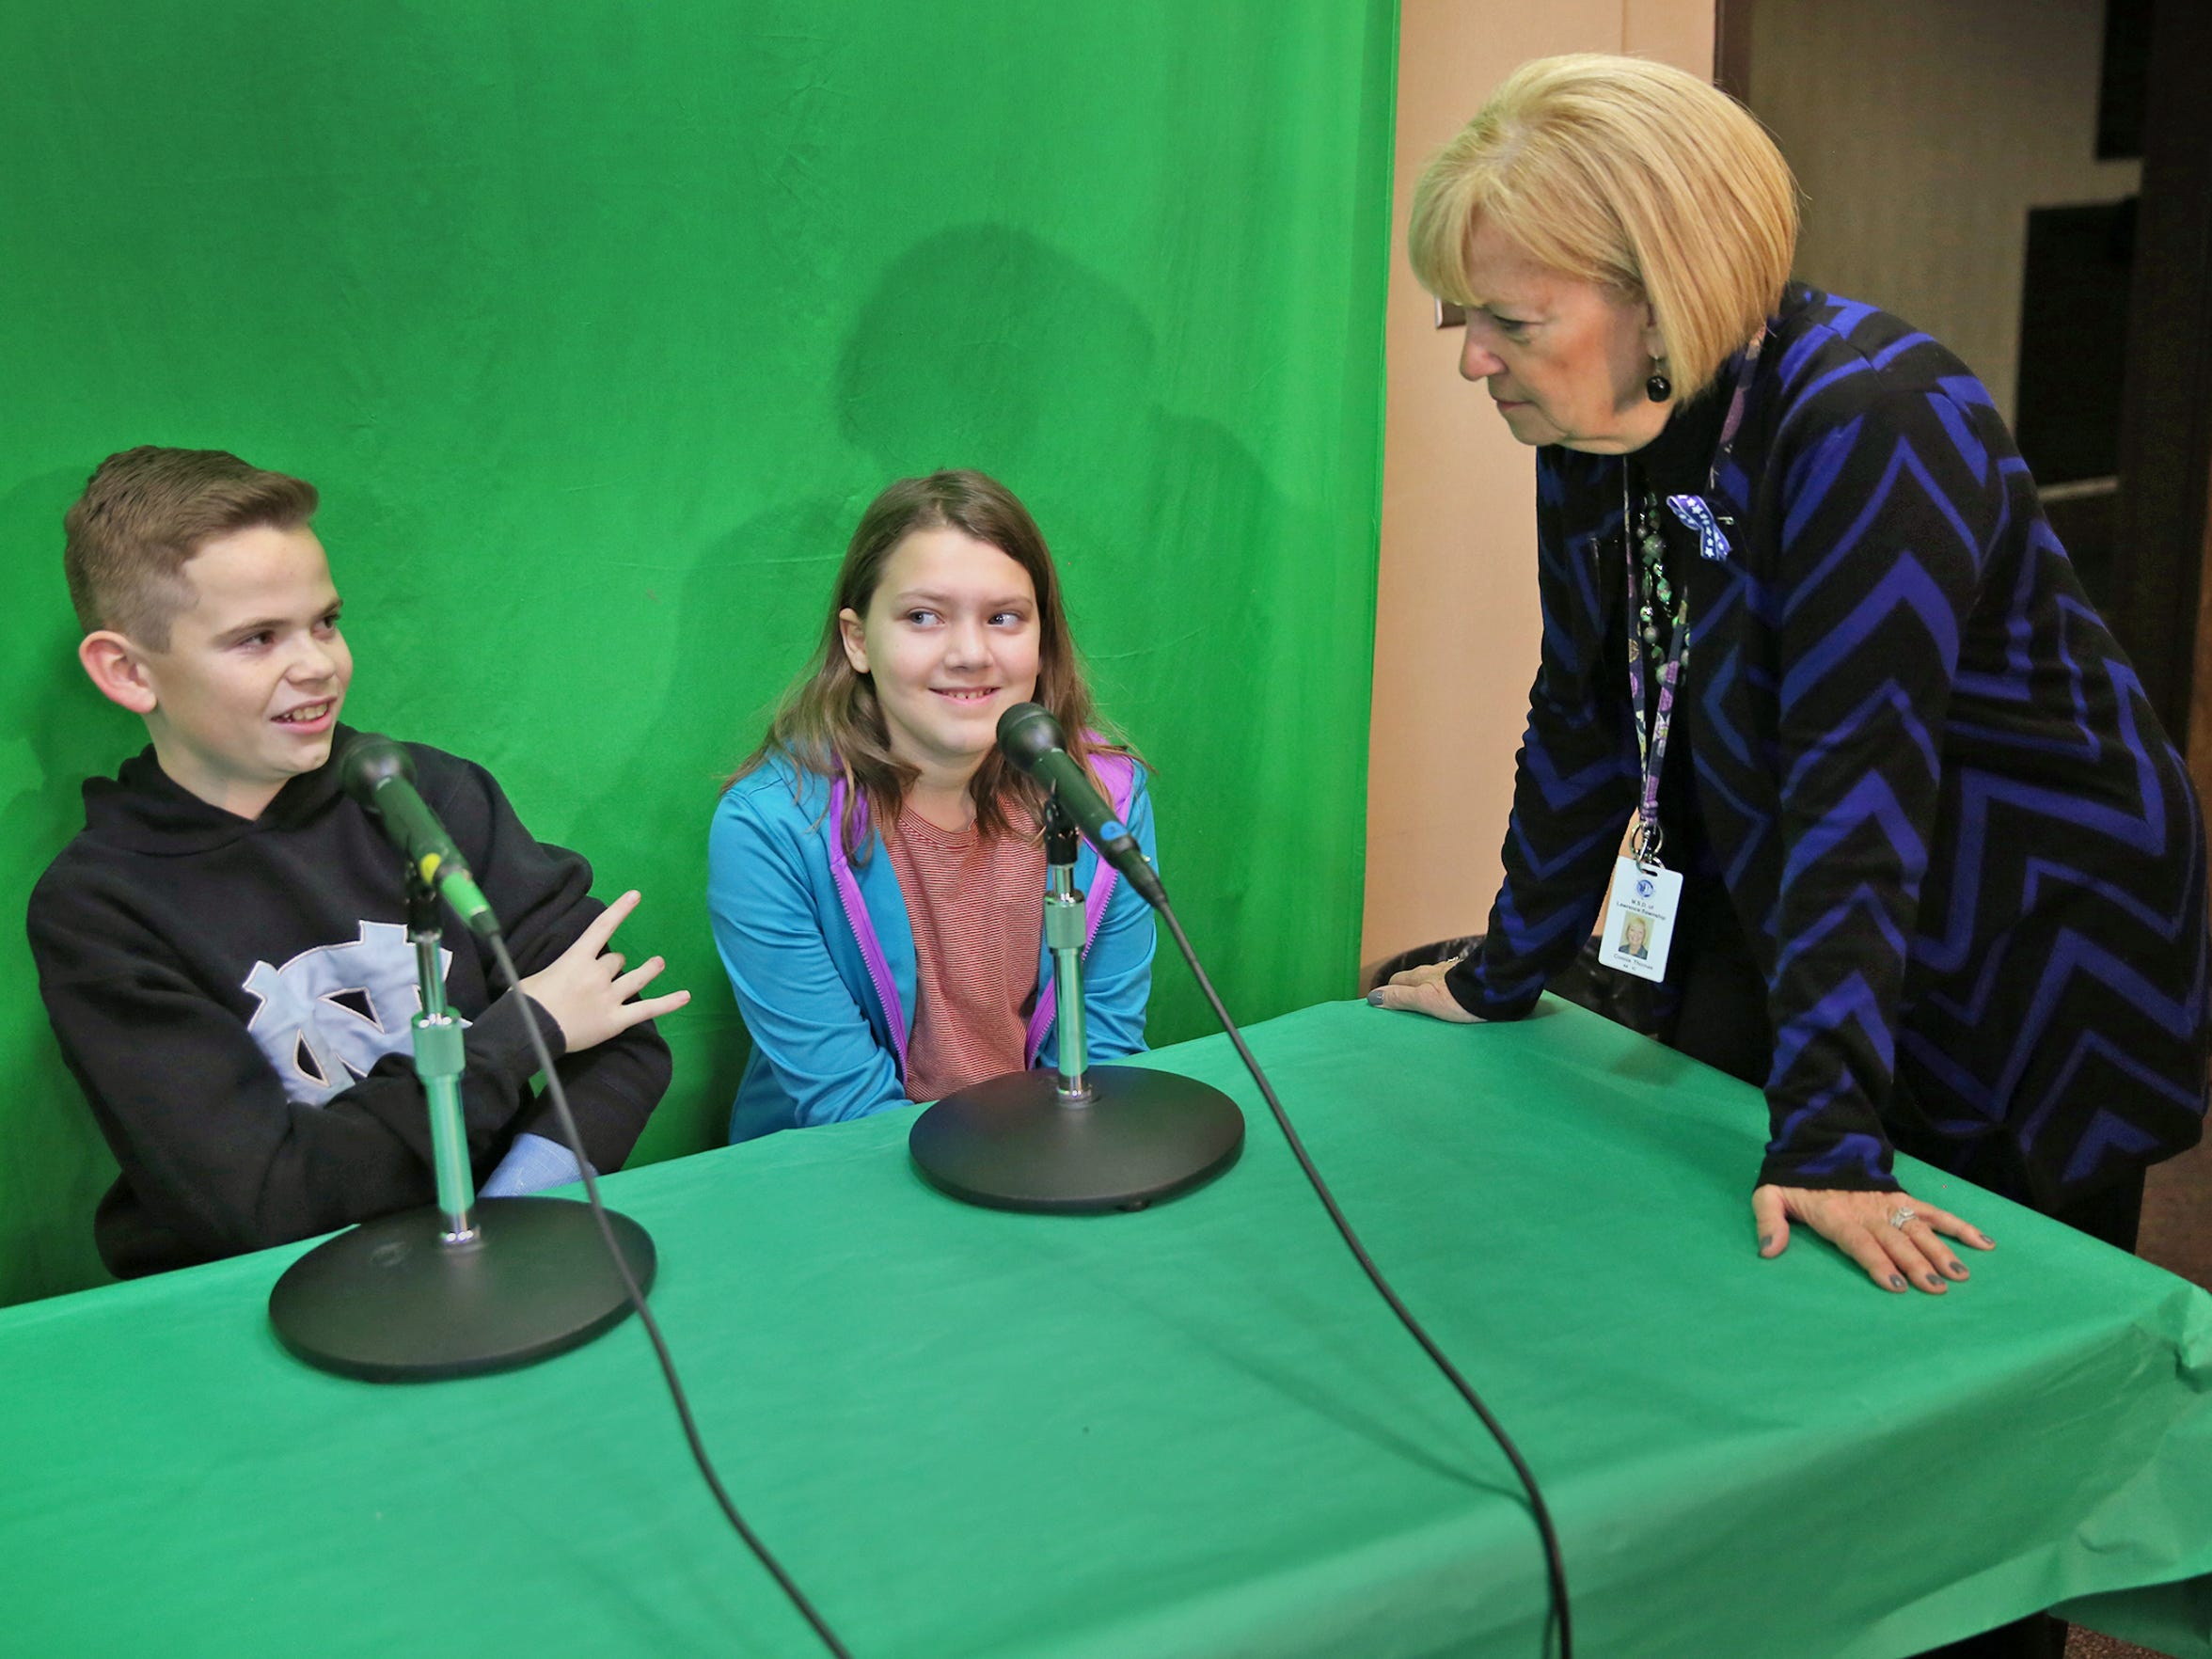 Connie Thomas visited with students Charlie (left) and Ella preparing to read the morning news at Amy Beverland Elementary on Tuesday, Feb. 16, 2016.